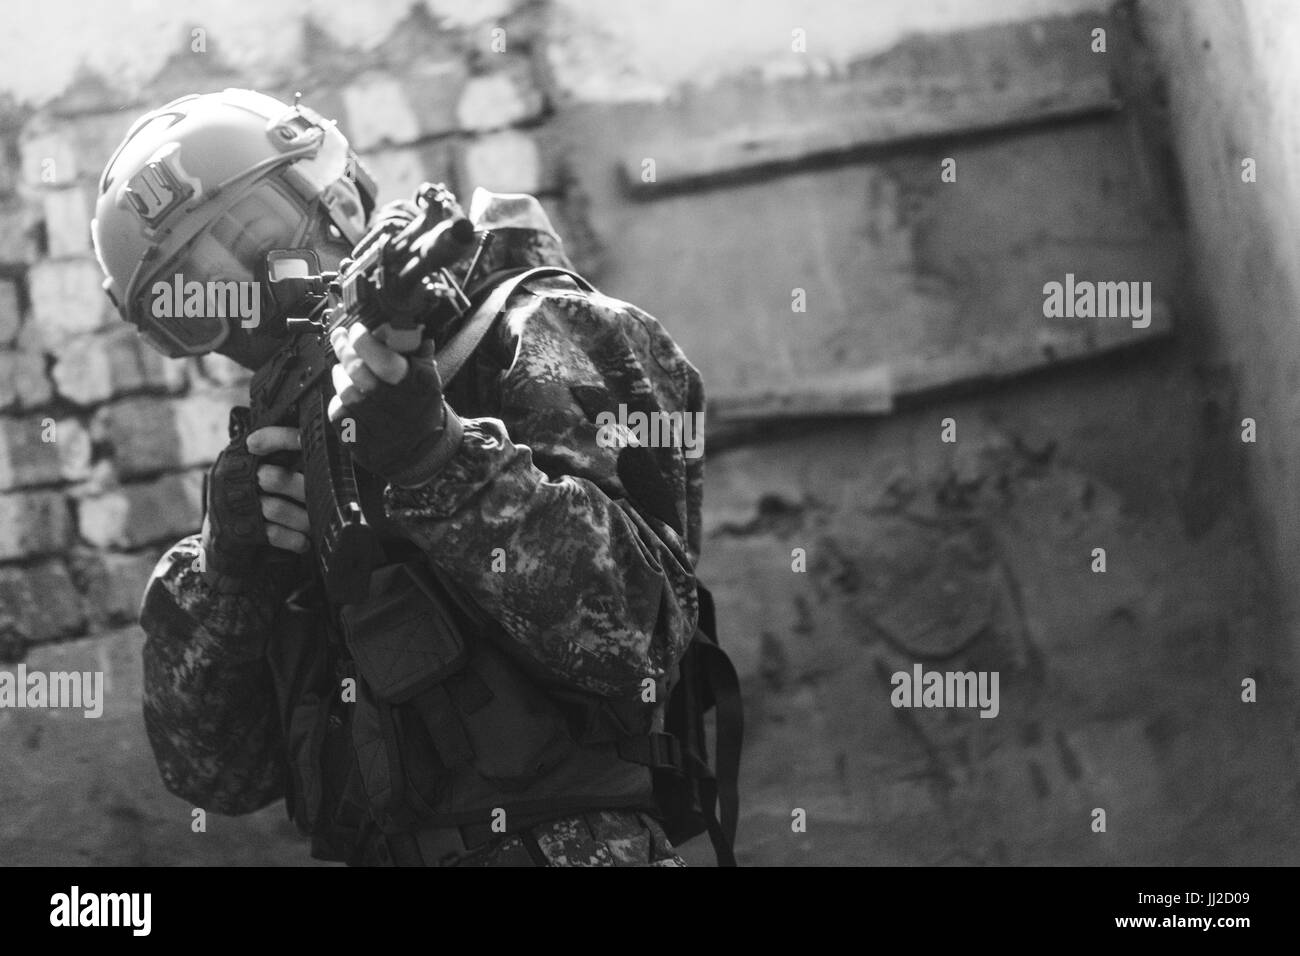 Photo of soldier with weapons - Stock Image